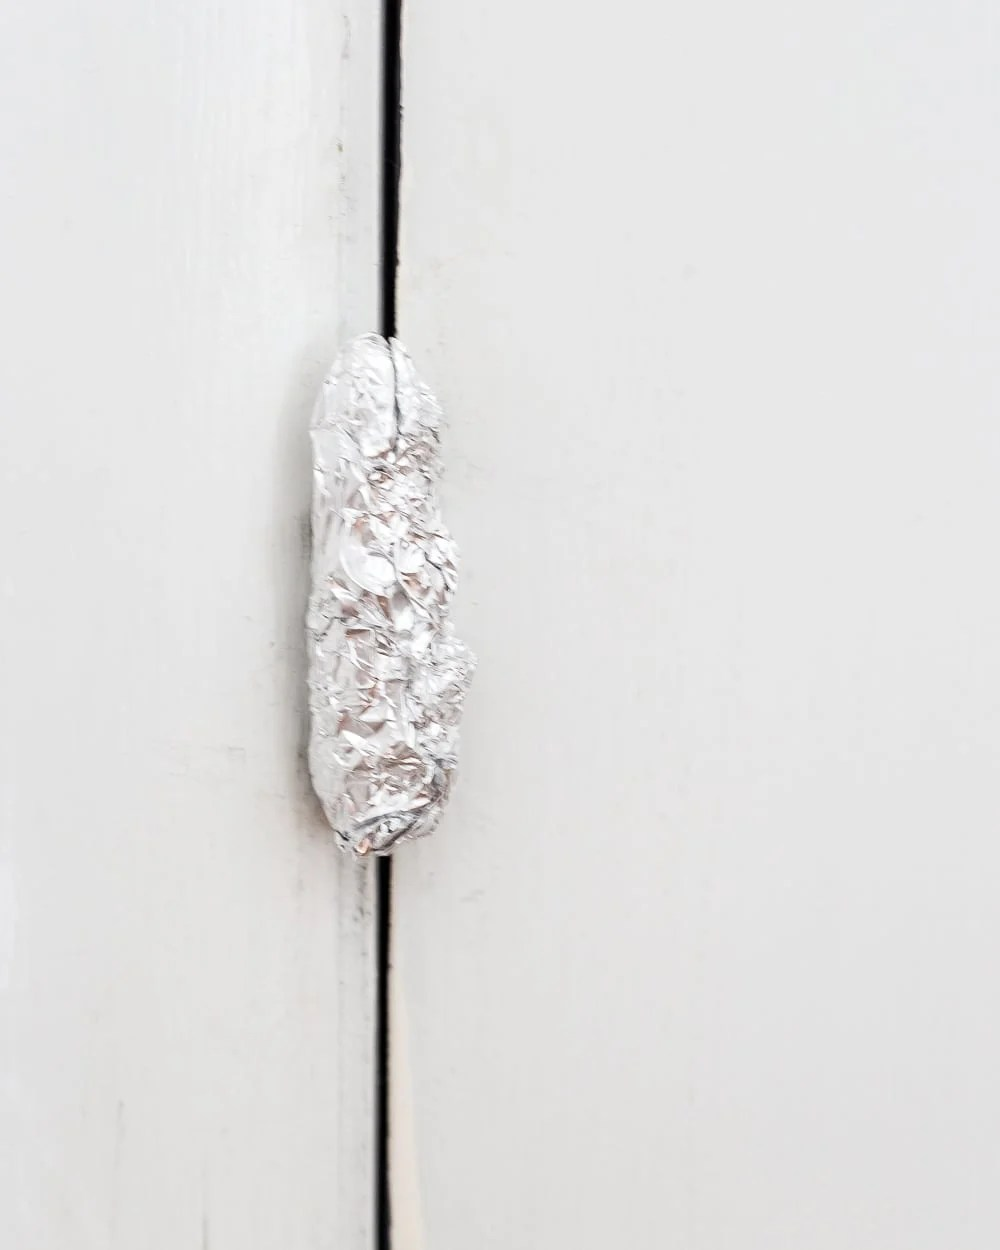 Tip: Use aluminum foil on hinges and doorknobs before painting doors